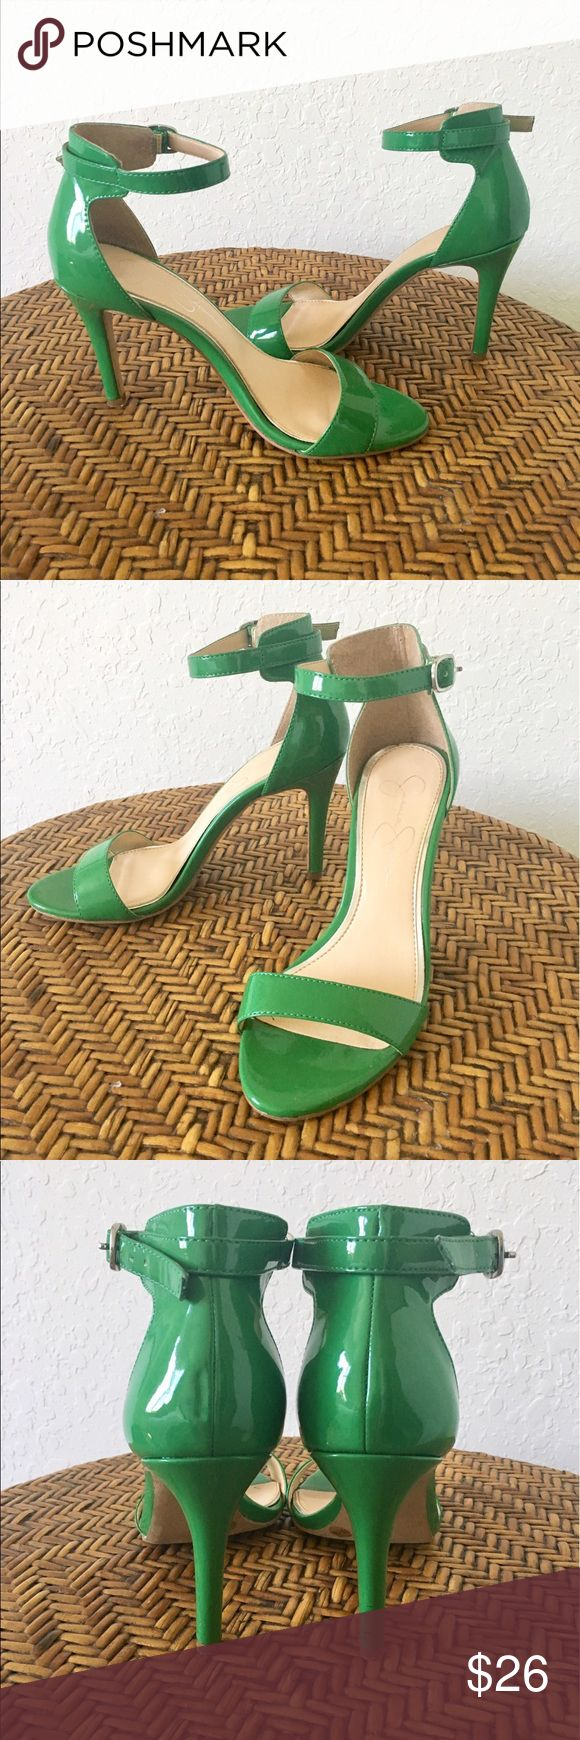 JS Green Strappy Heels Gorgeous Jessica Simpson Strappy Heels. So cute! Such a pretty green, perfect for that pop of color. Tiny hiccup on heel as pictured but barely noticeable. Worn once if that, great Condition! Jessica Simpson Shoes Heels